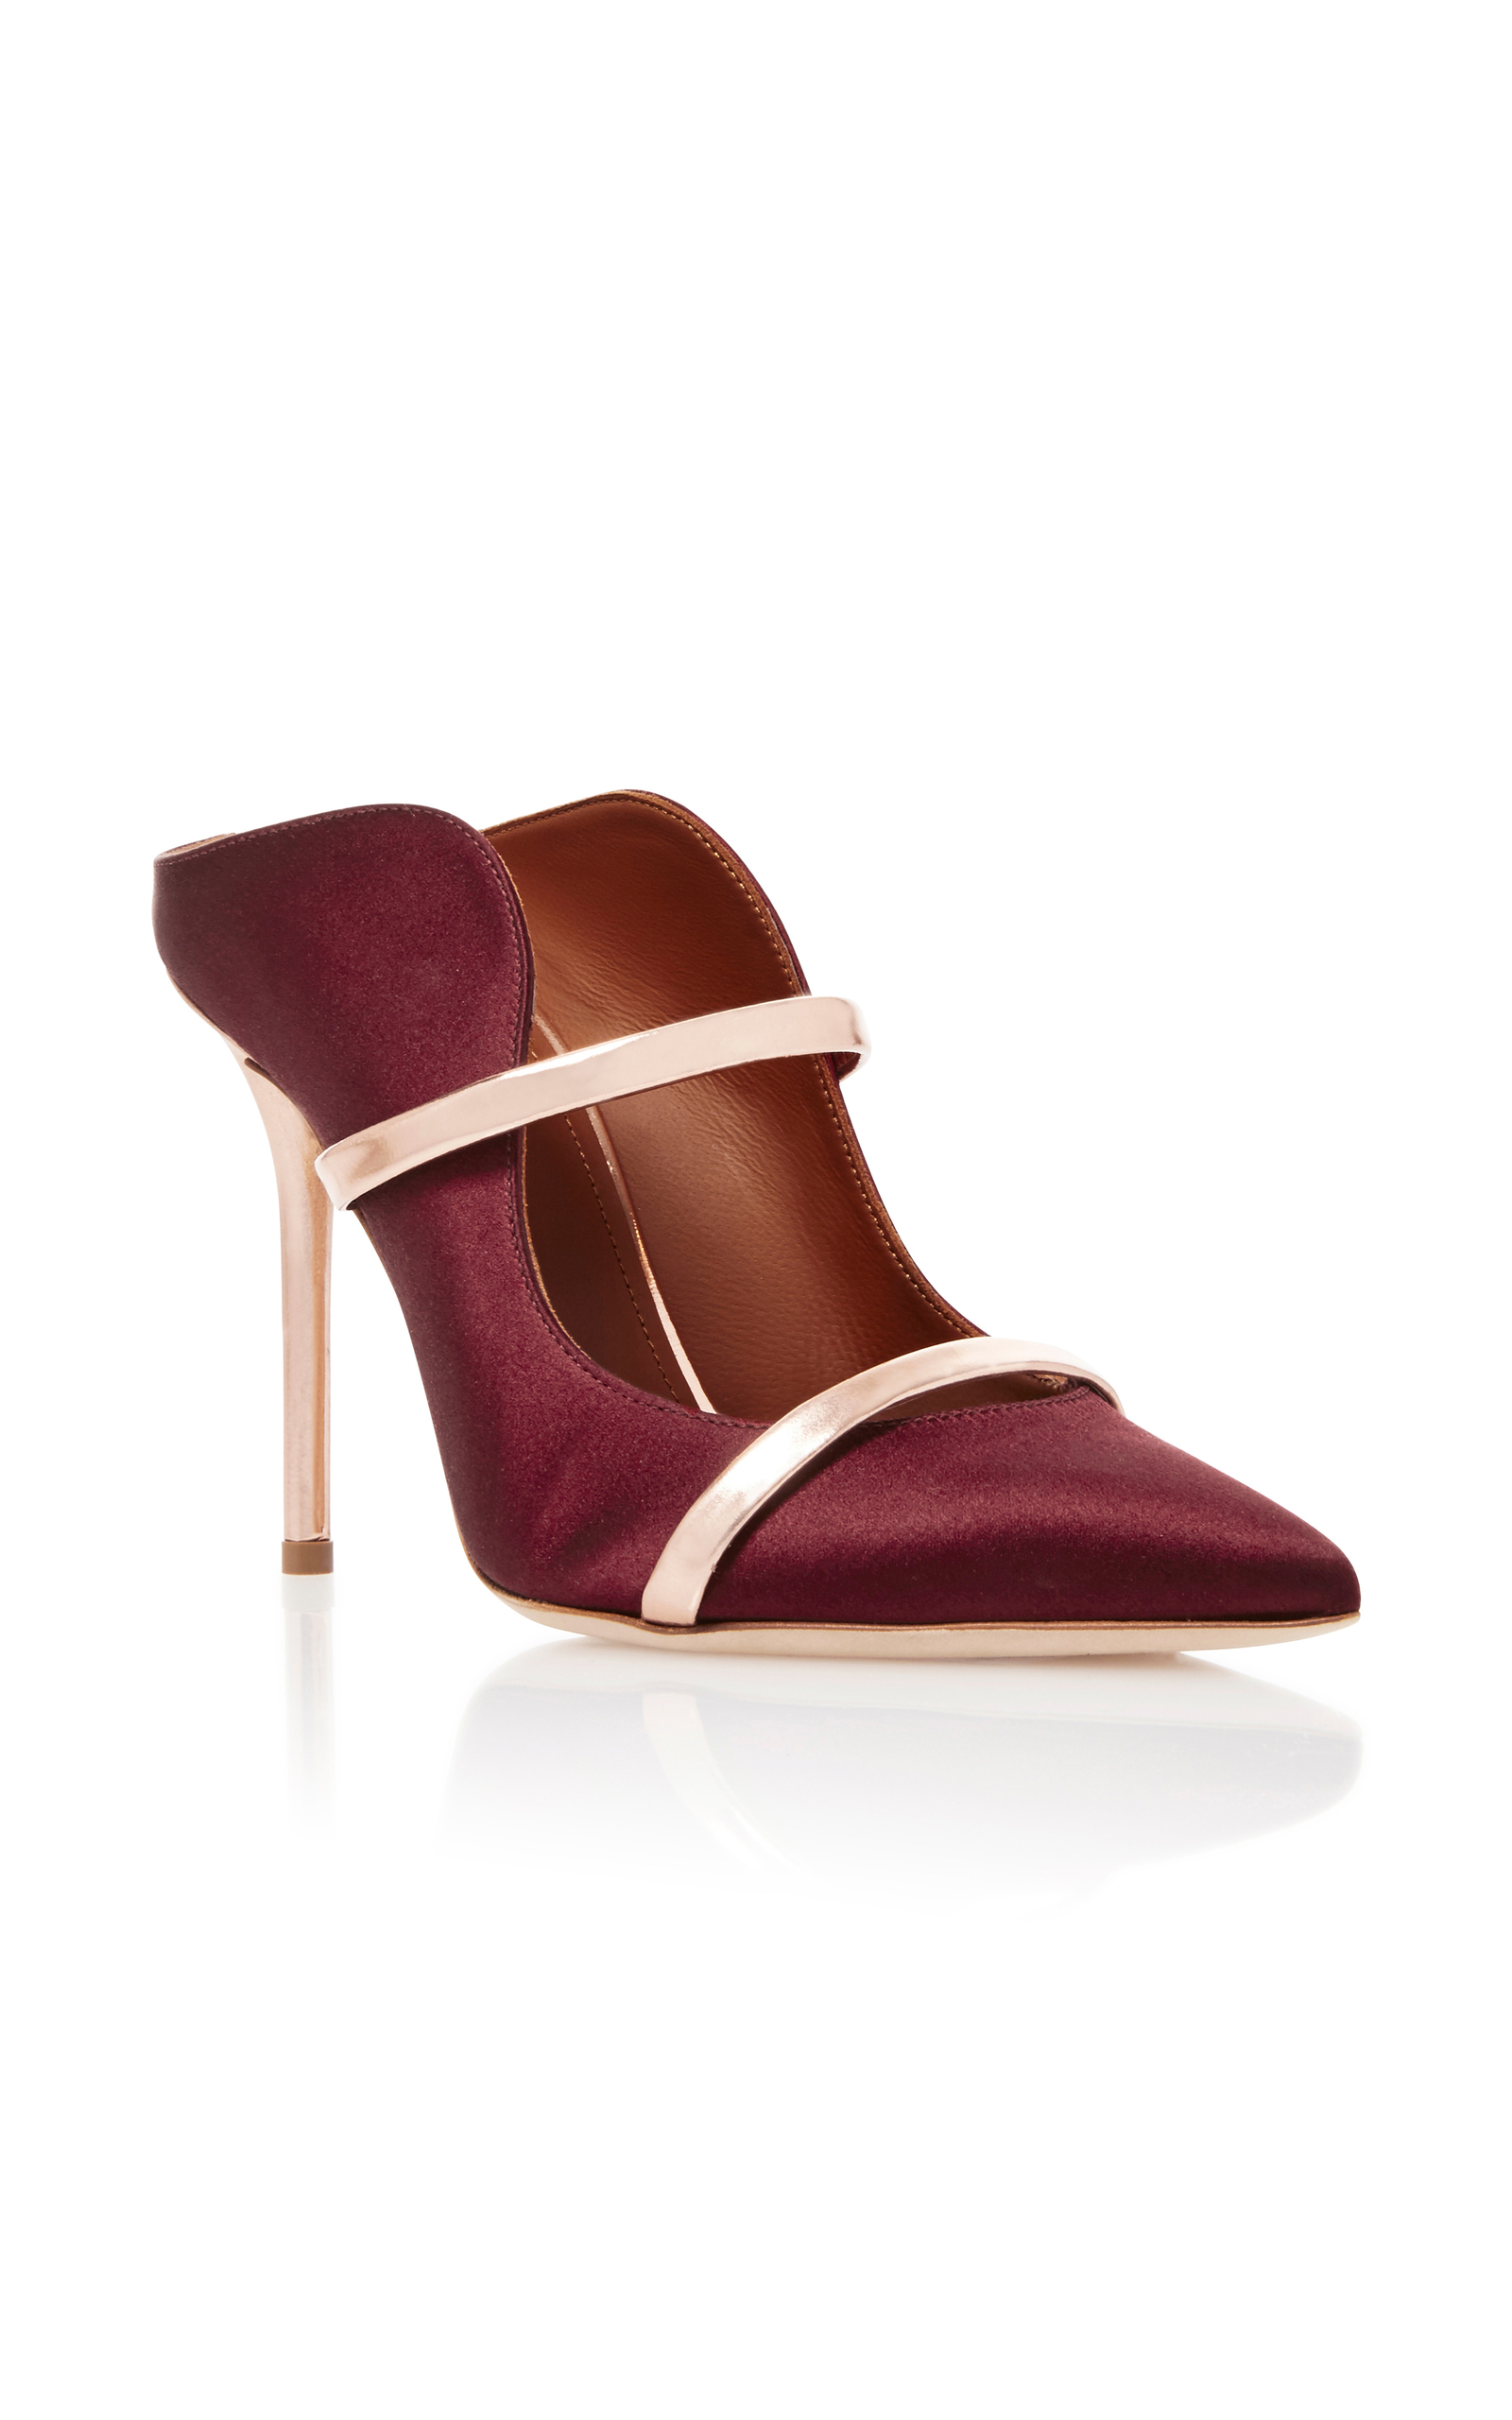 Maureen satin mules Malone Souliers z2IOS2